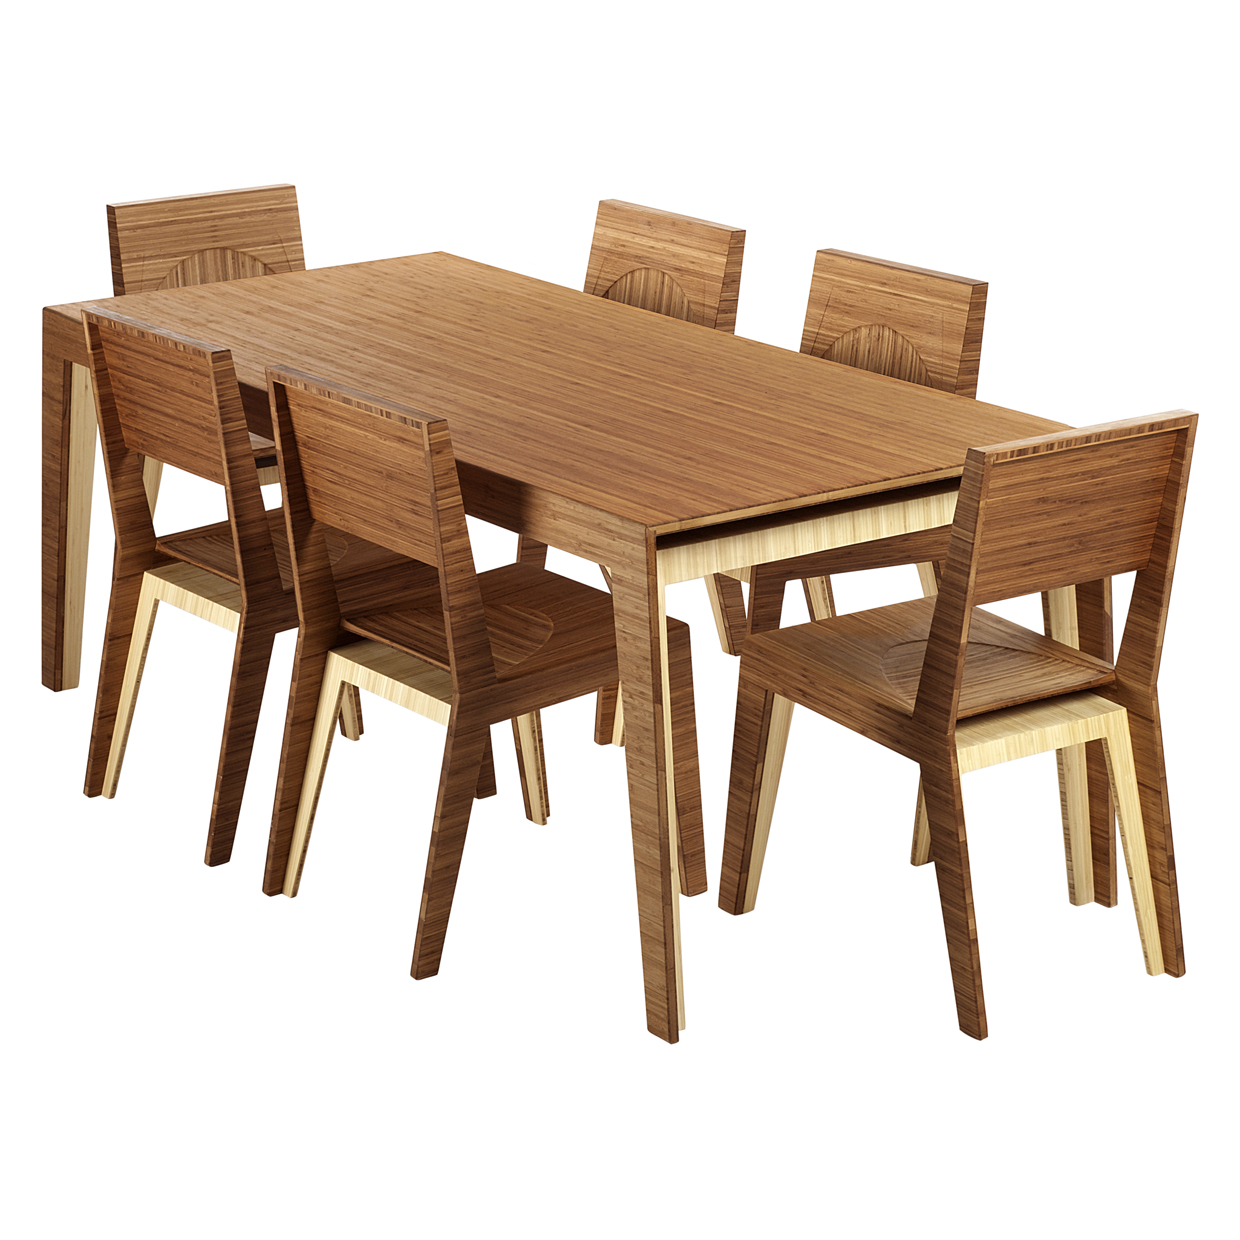 Hollow Dining Table Person Brave Space Design